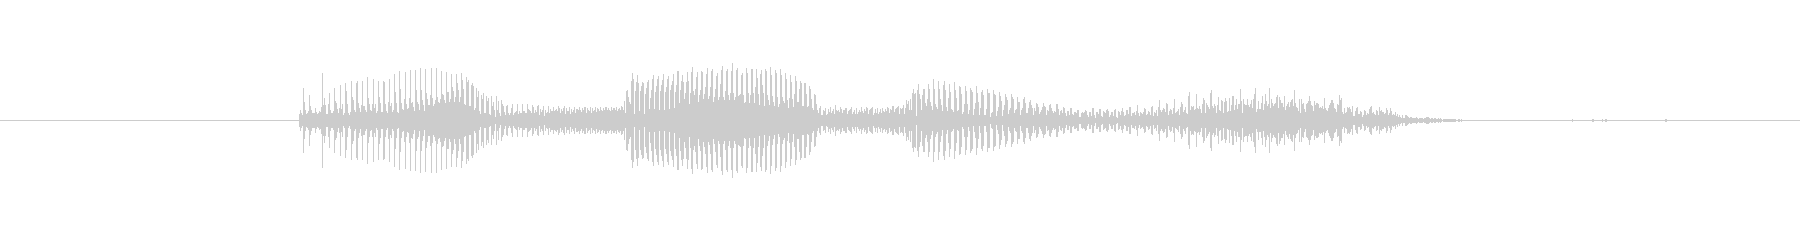 Now ... (female)'s unreproduced waveform